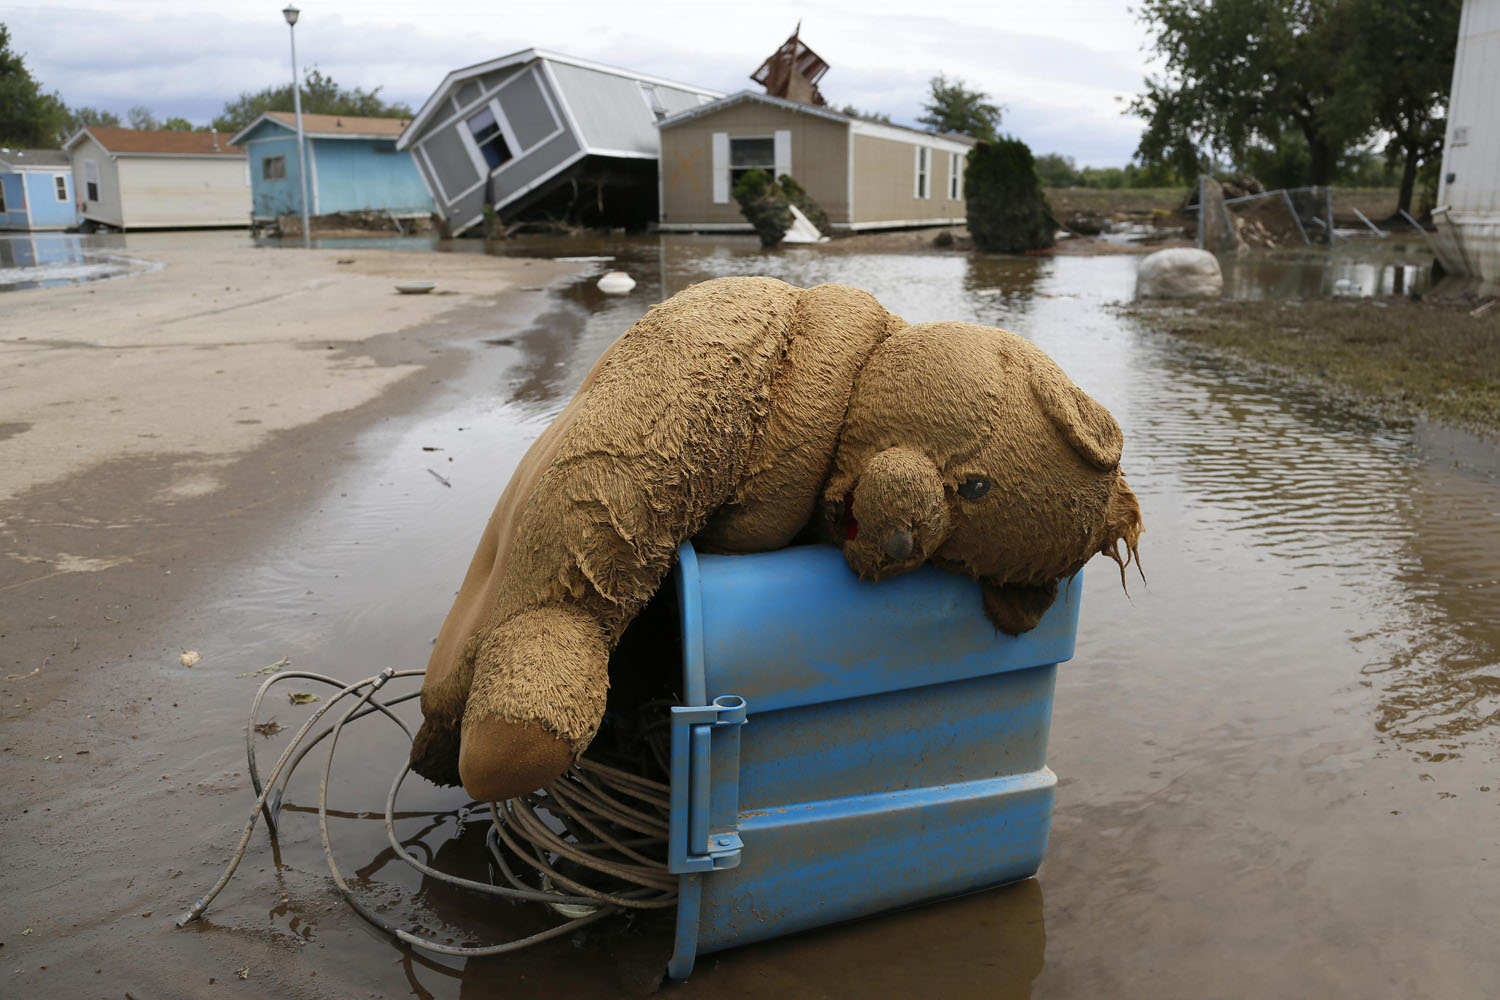 Sept. 23, 2013. A stuffed teddy bear chair lies slumped over in the flooded Eastwood Village in Evans, Colorado.